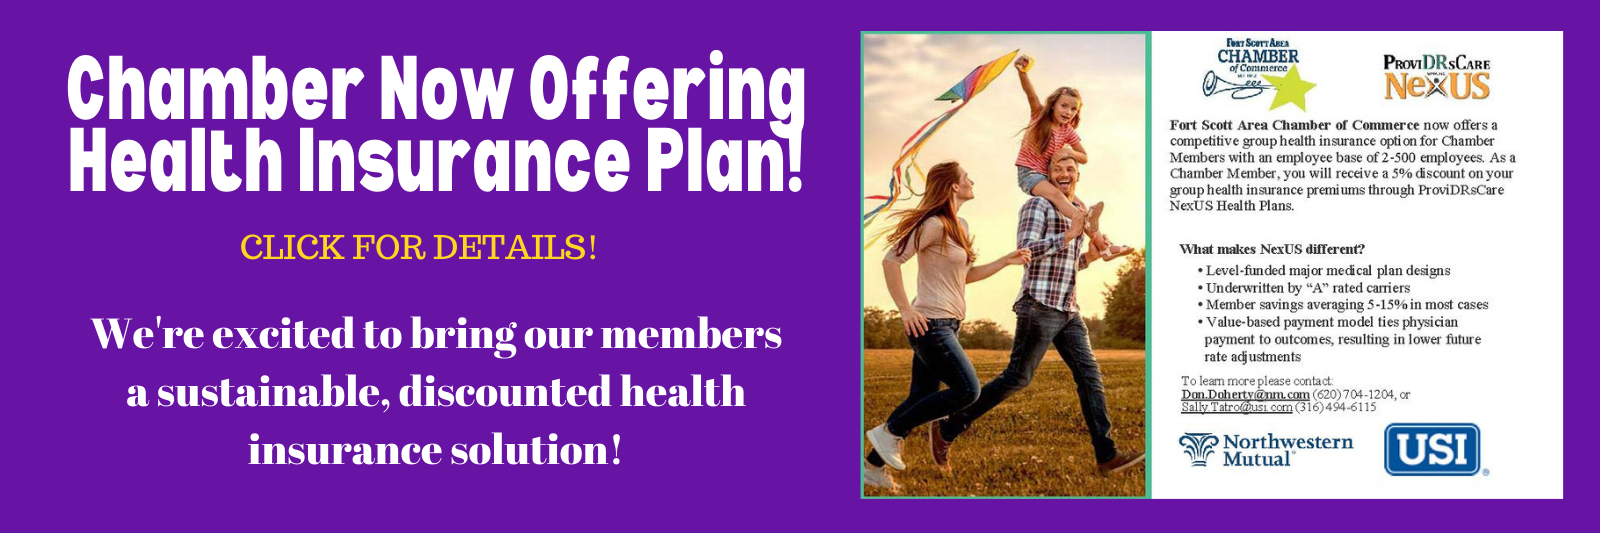 Chamber-Now-Offering-Health-Insurance-Plan.---website-graphic.png